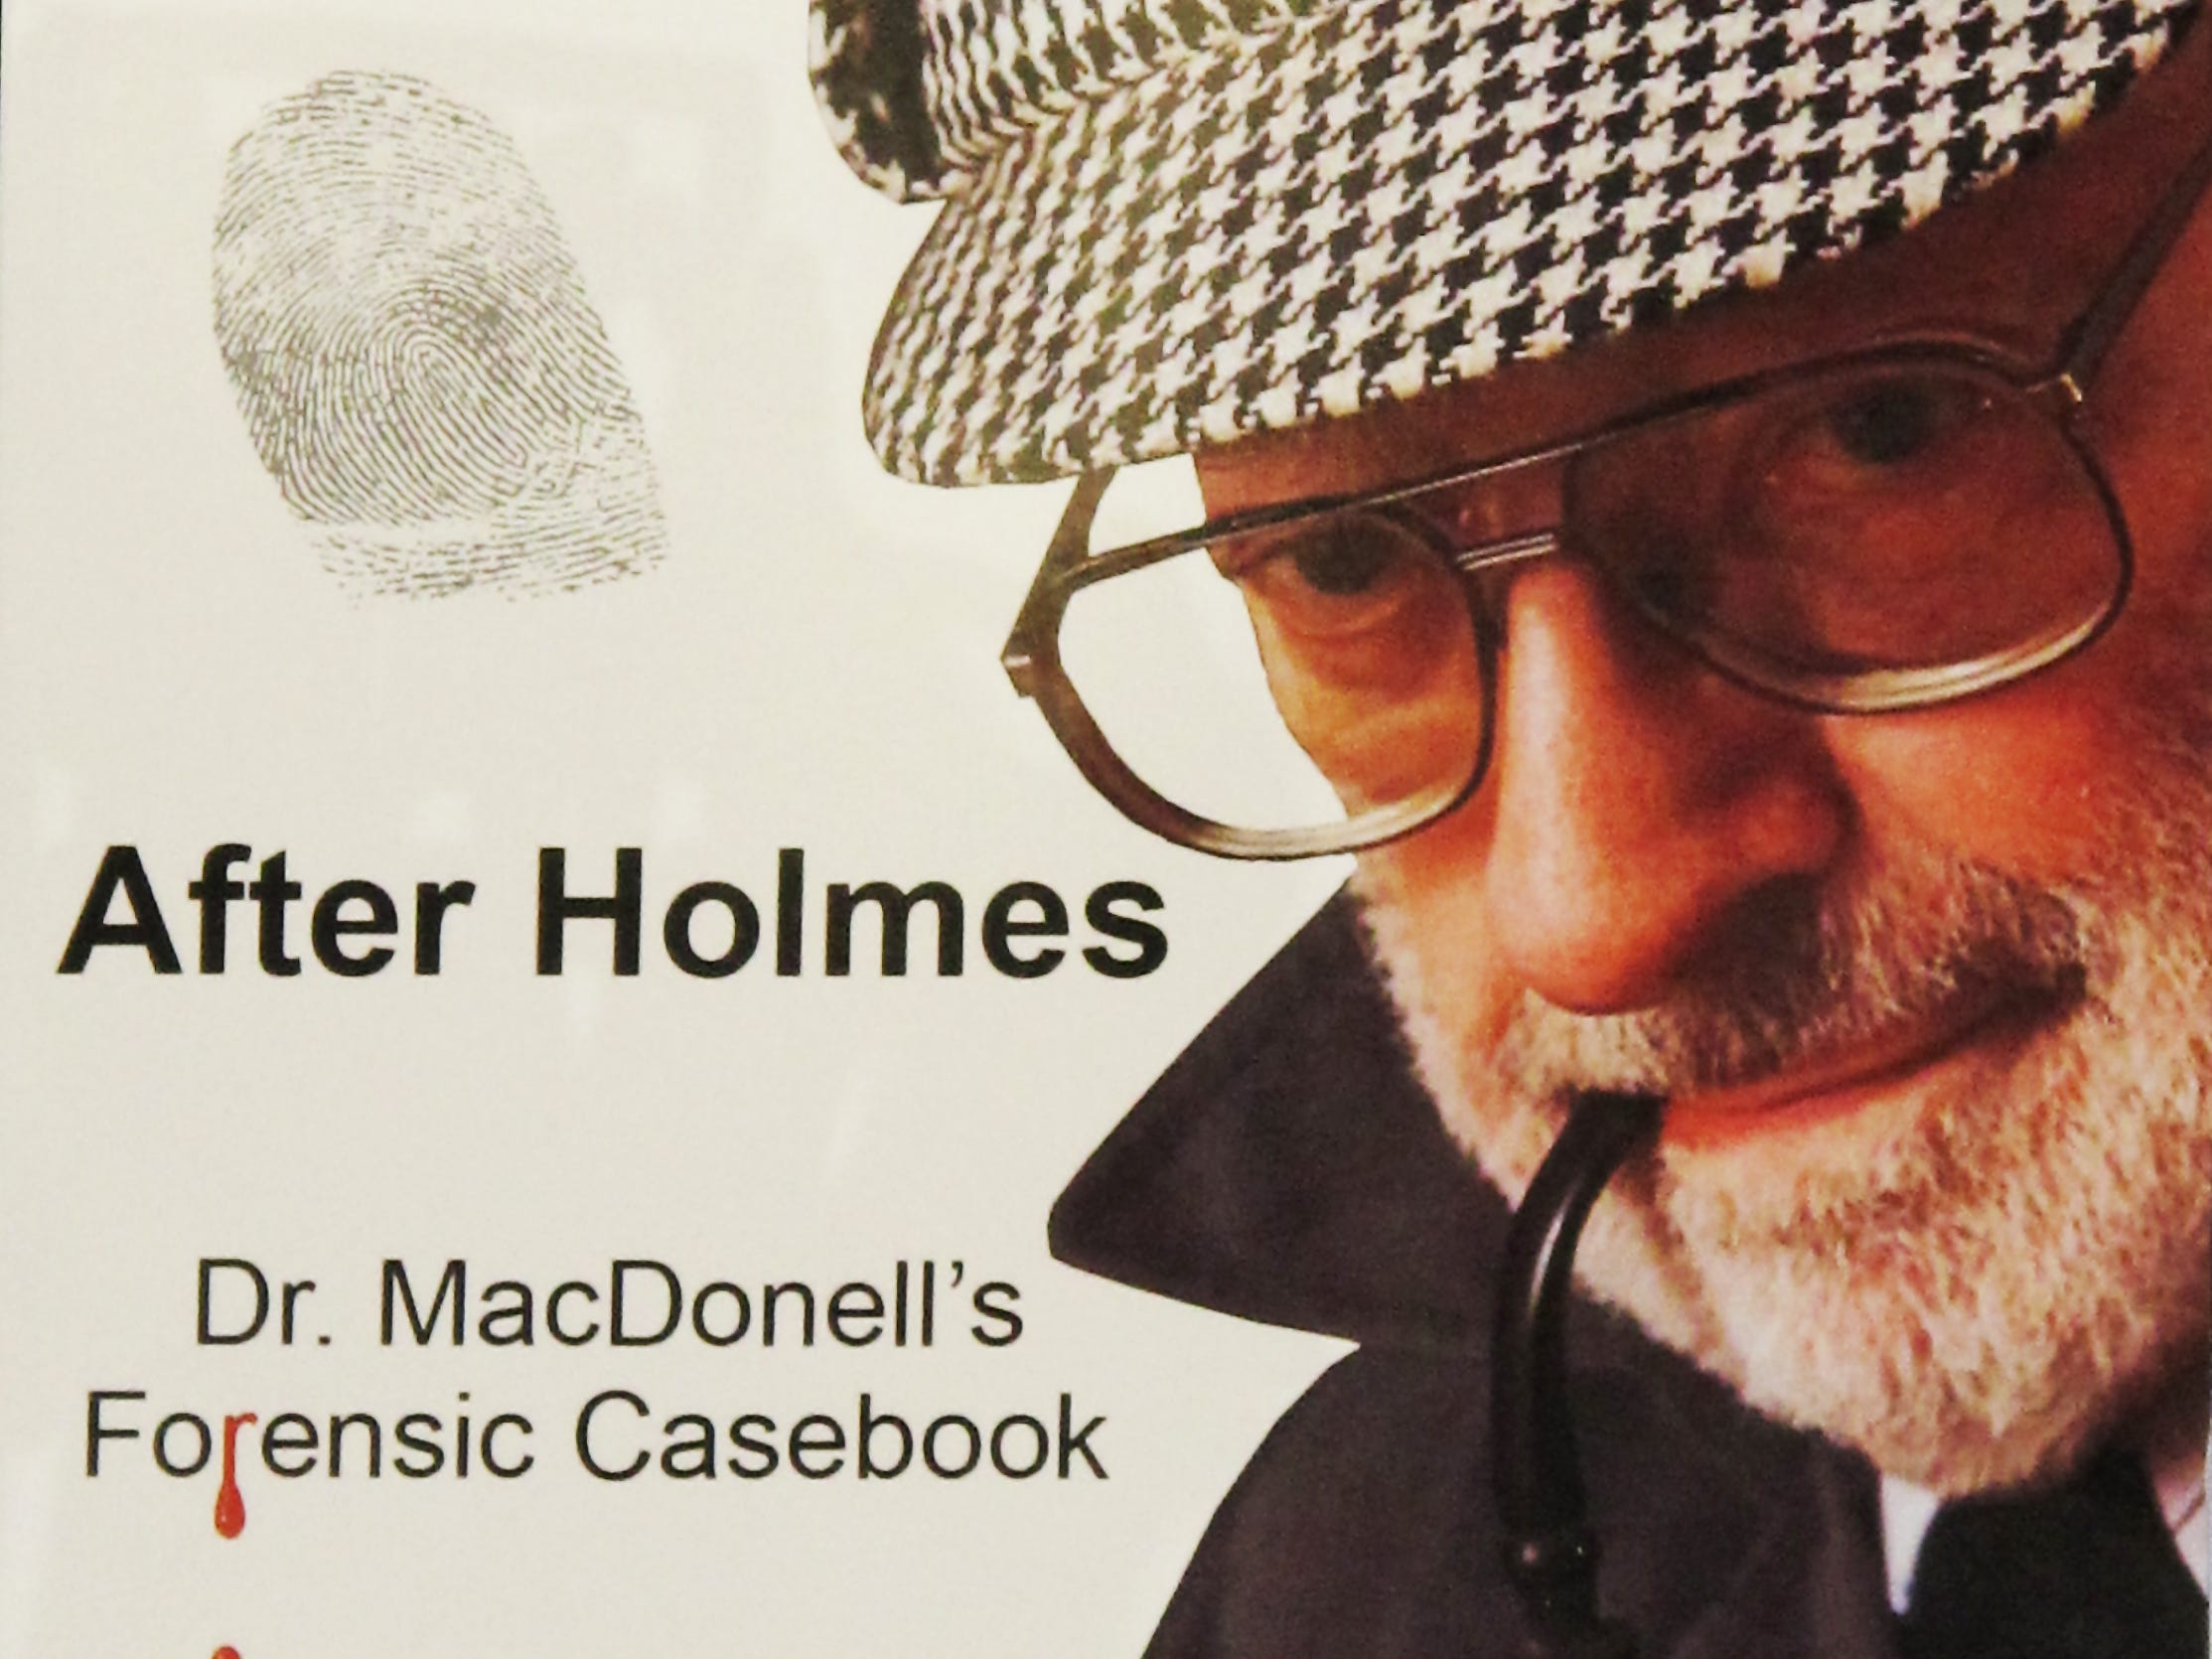 Forensic evidence expert Herbert MacDonell of Corning published a new book late in his career that details his 63 years of investigations and court cases.